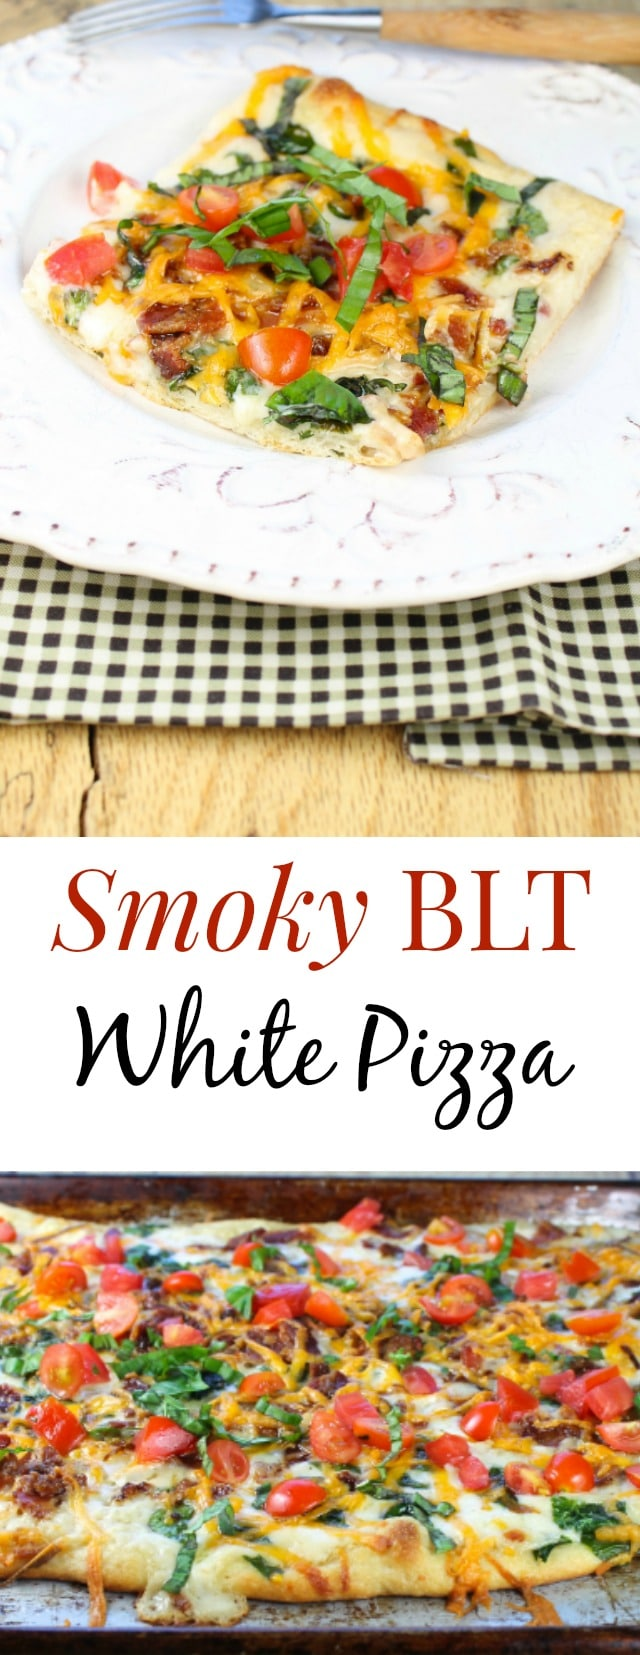 Smoky BLT White Pizza Recipe found at missinthekitchen.com